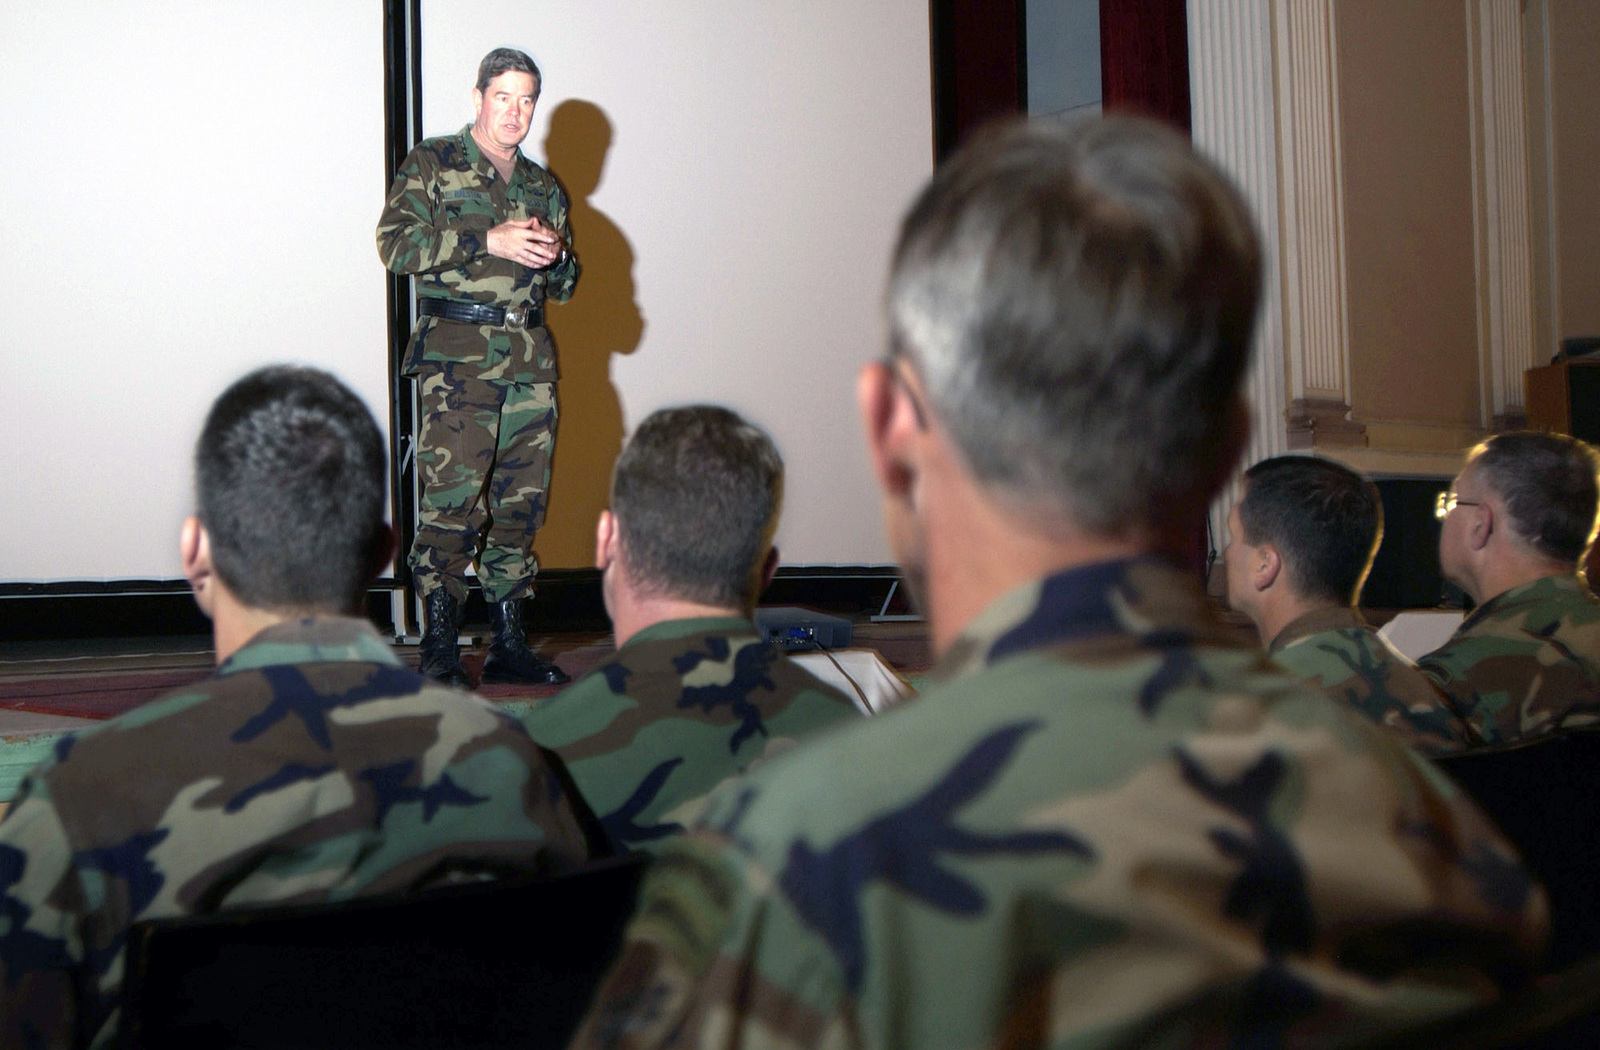 US Air Force (USAF) General Joseph W. Ralston (background), Commander in CHIEF, Unites States European Command (USEUCOM) and Supreme Allied Commander of Europe, National Atlantic Treaty Organization (NATO), speaks with US and Georgian Military Officials participating in the Georgia Train and Equip Program (GETEP), during his visit to Tbilisi, Georgia